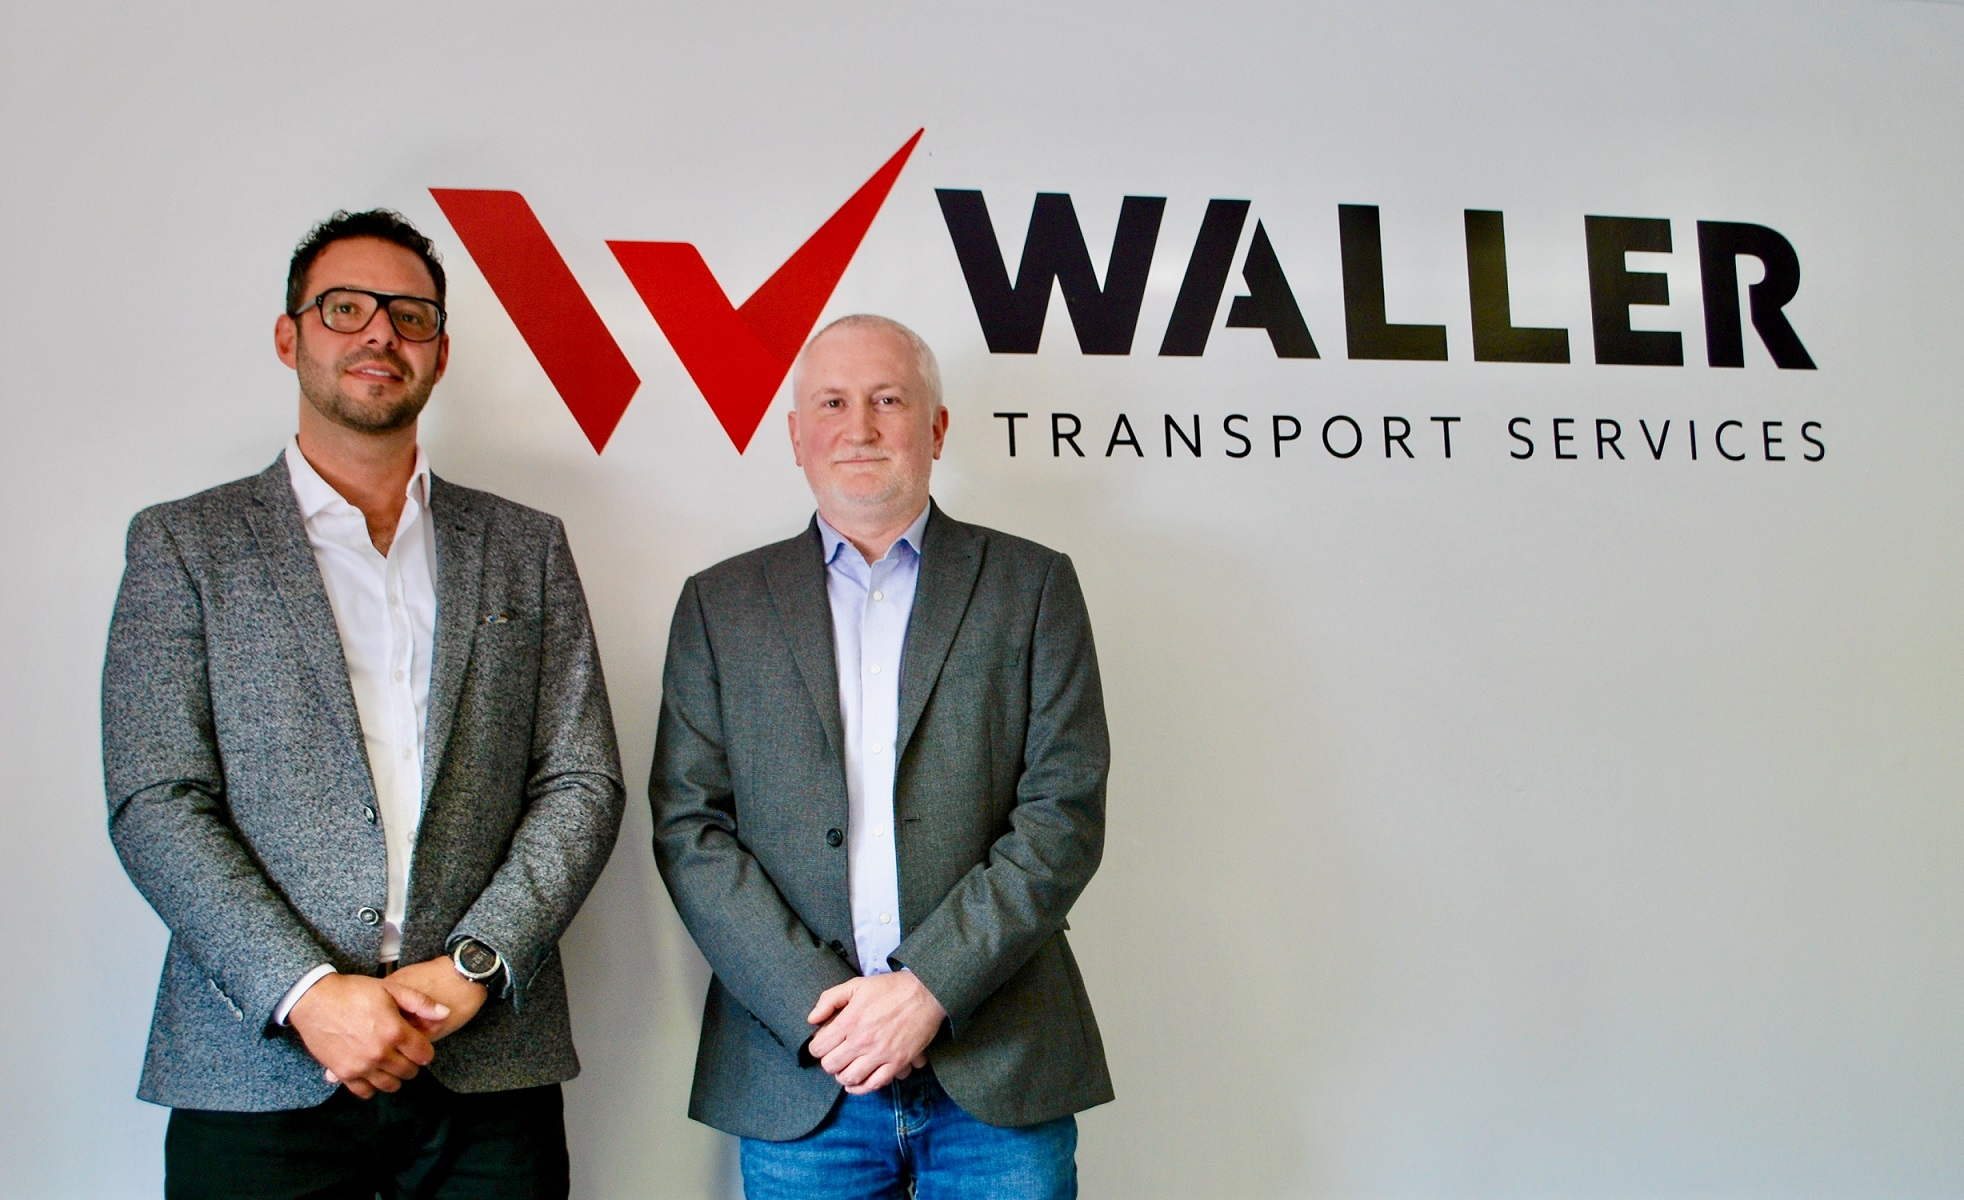 Waller Transport Services launches new transport operating system